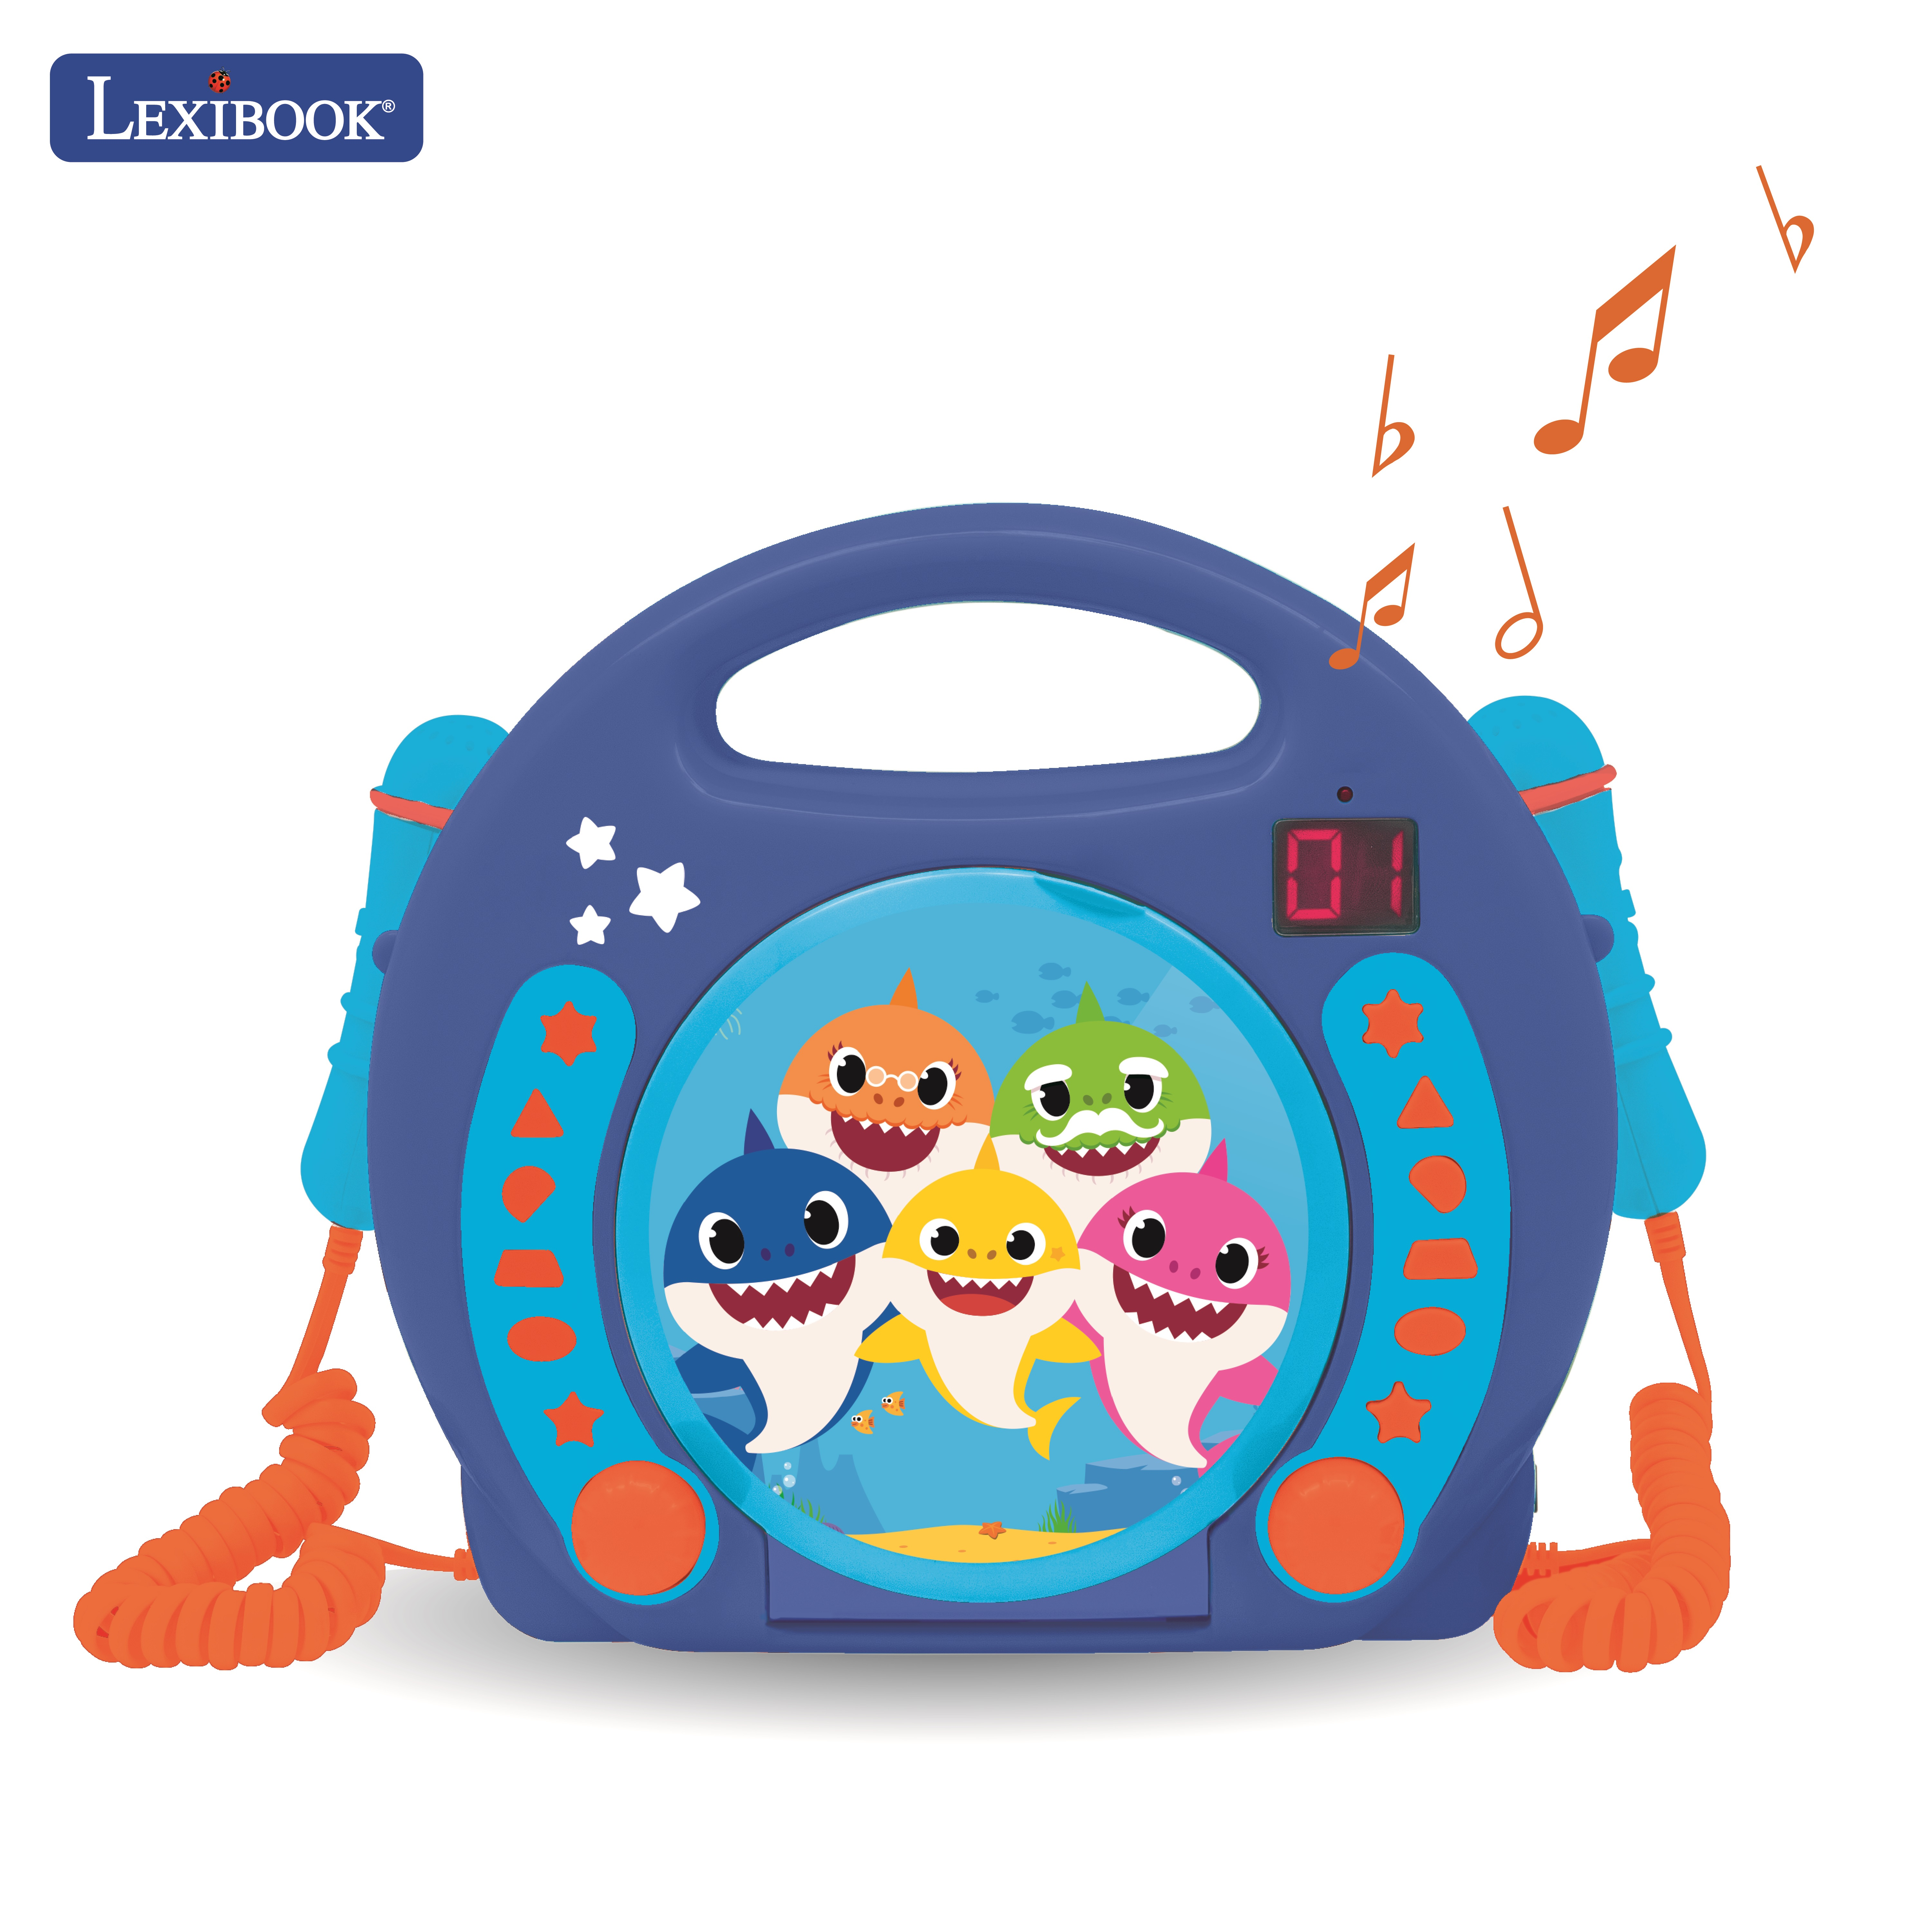 Lexibook - Baby Shark Portable CD player with 2 Sing Along microphones (RCDK100BS)